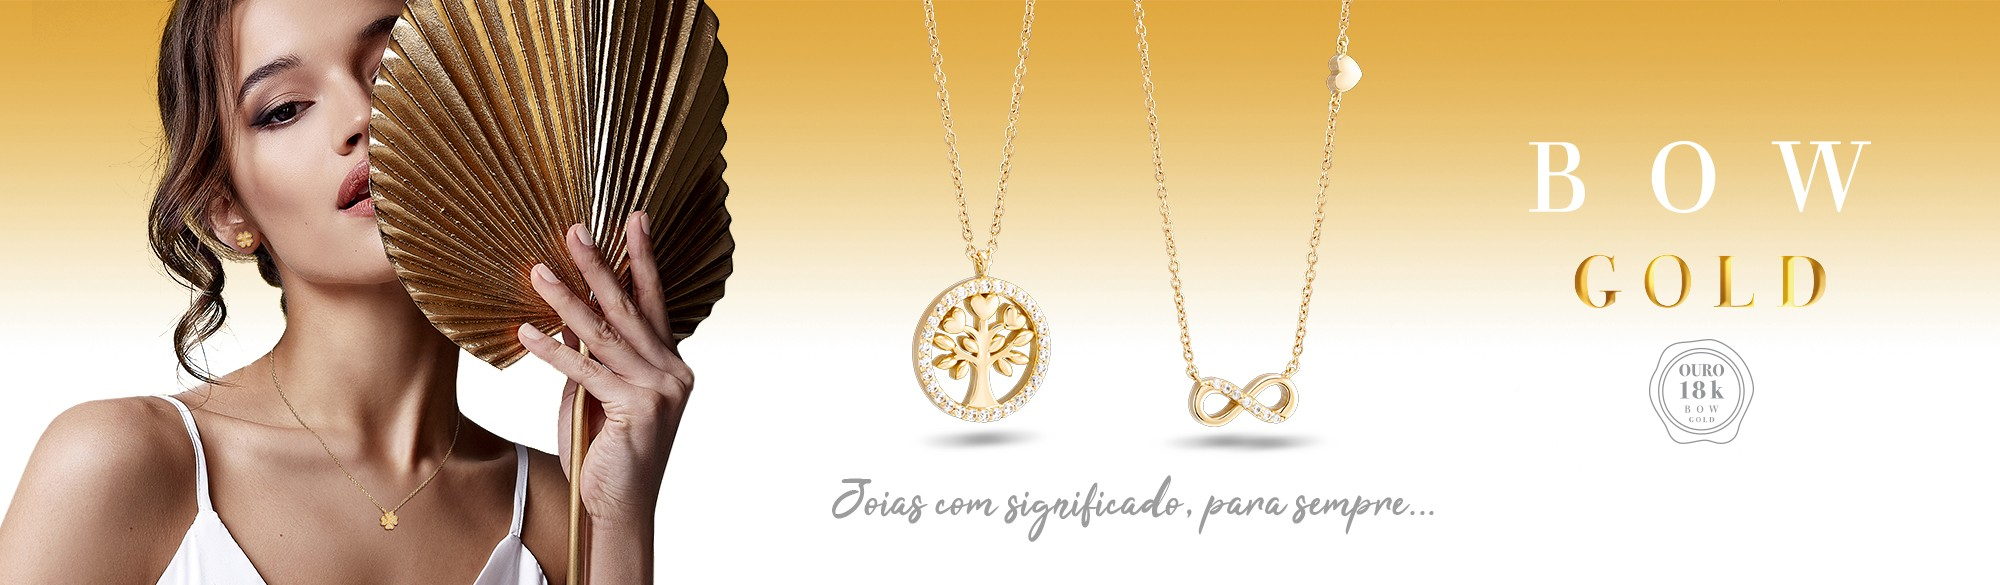 Joias Bow Gold - Ouro 18k